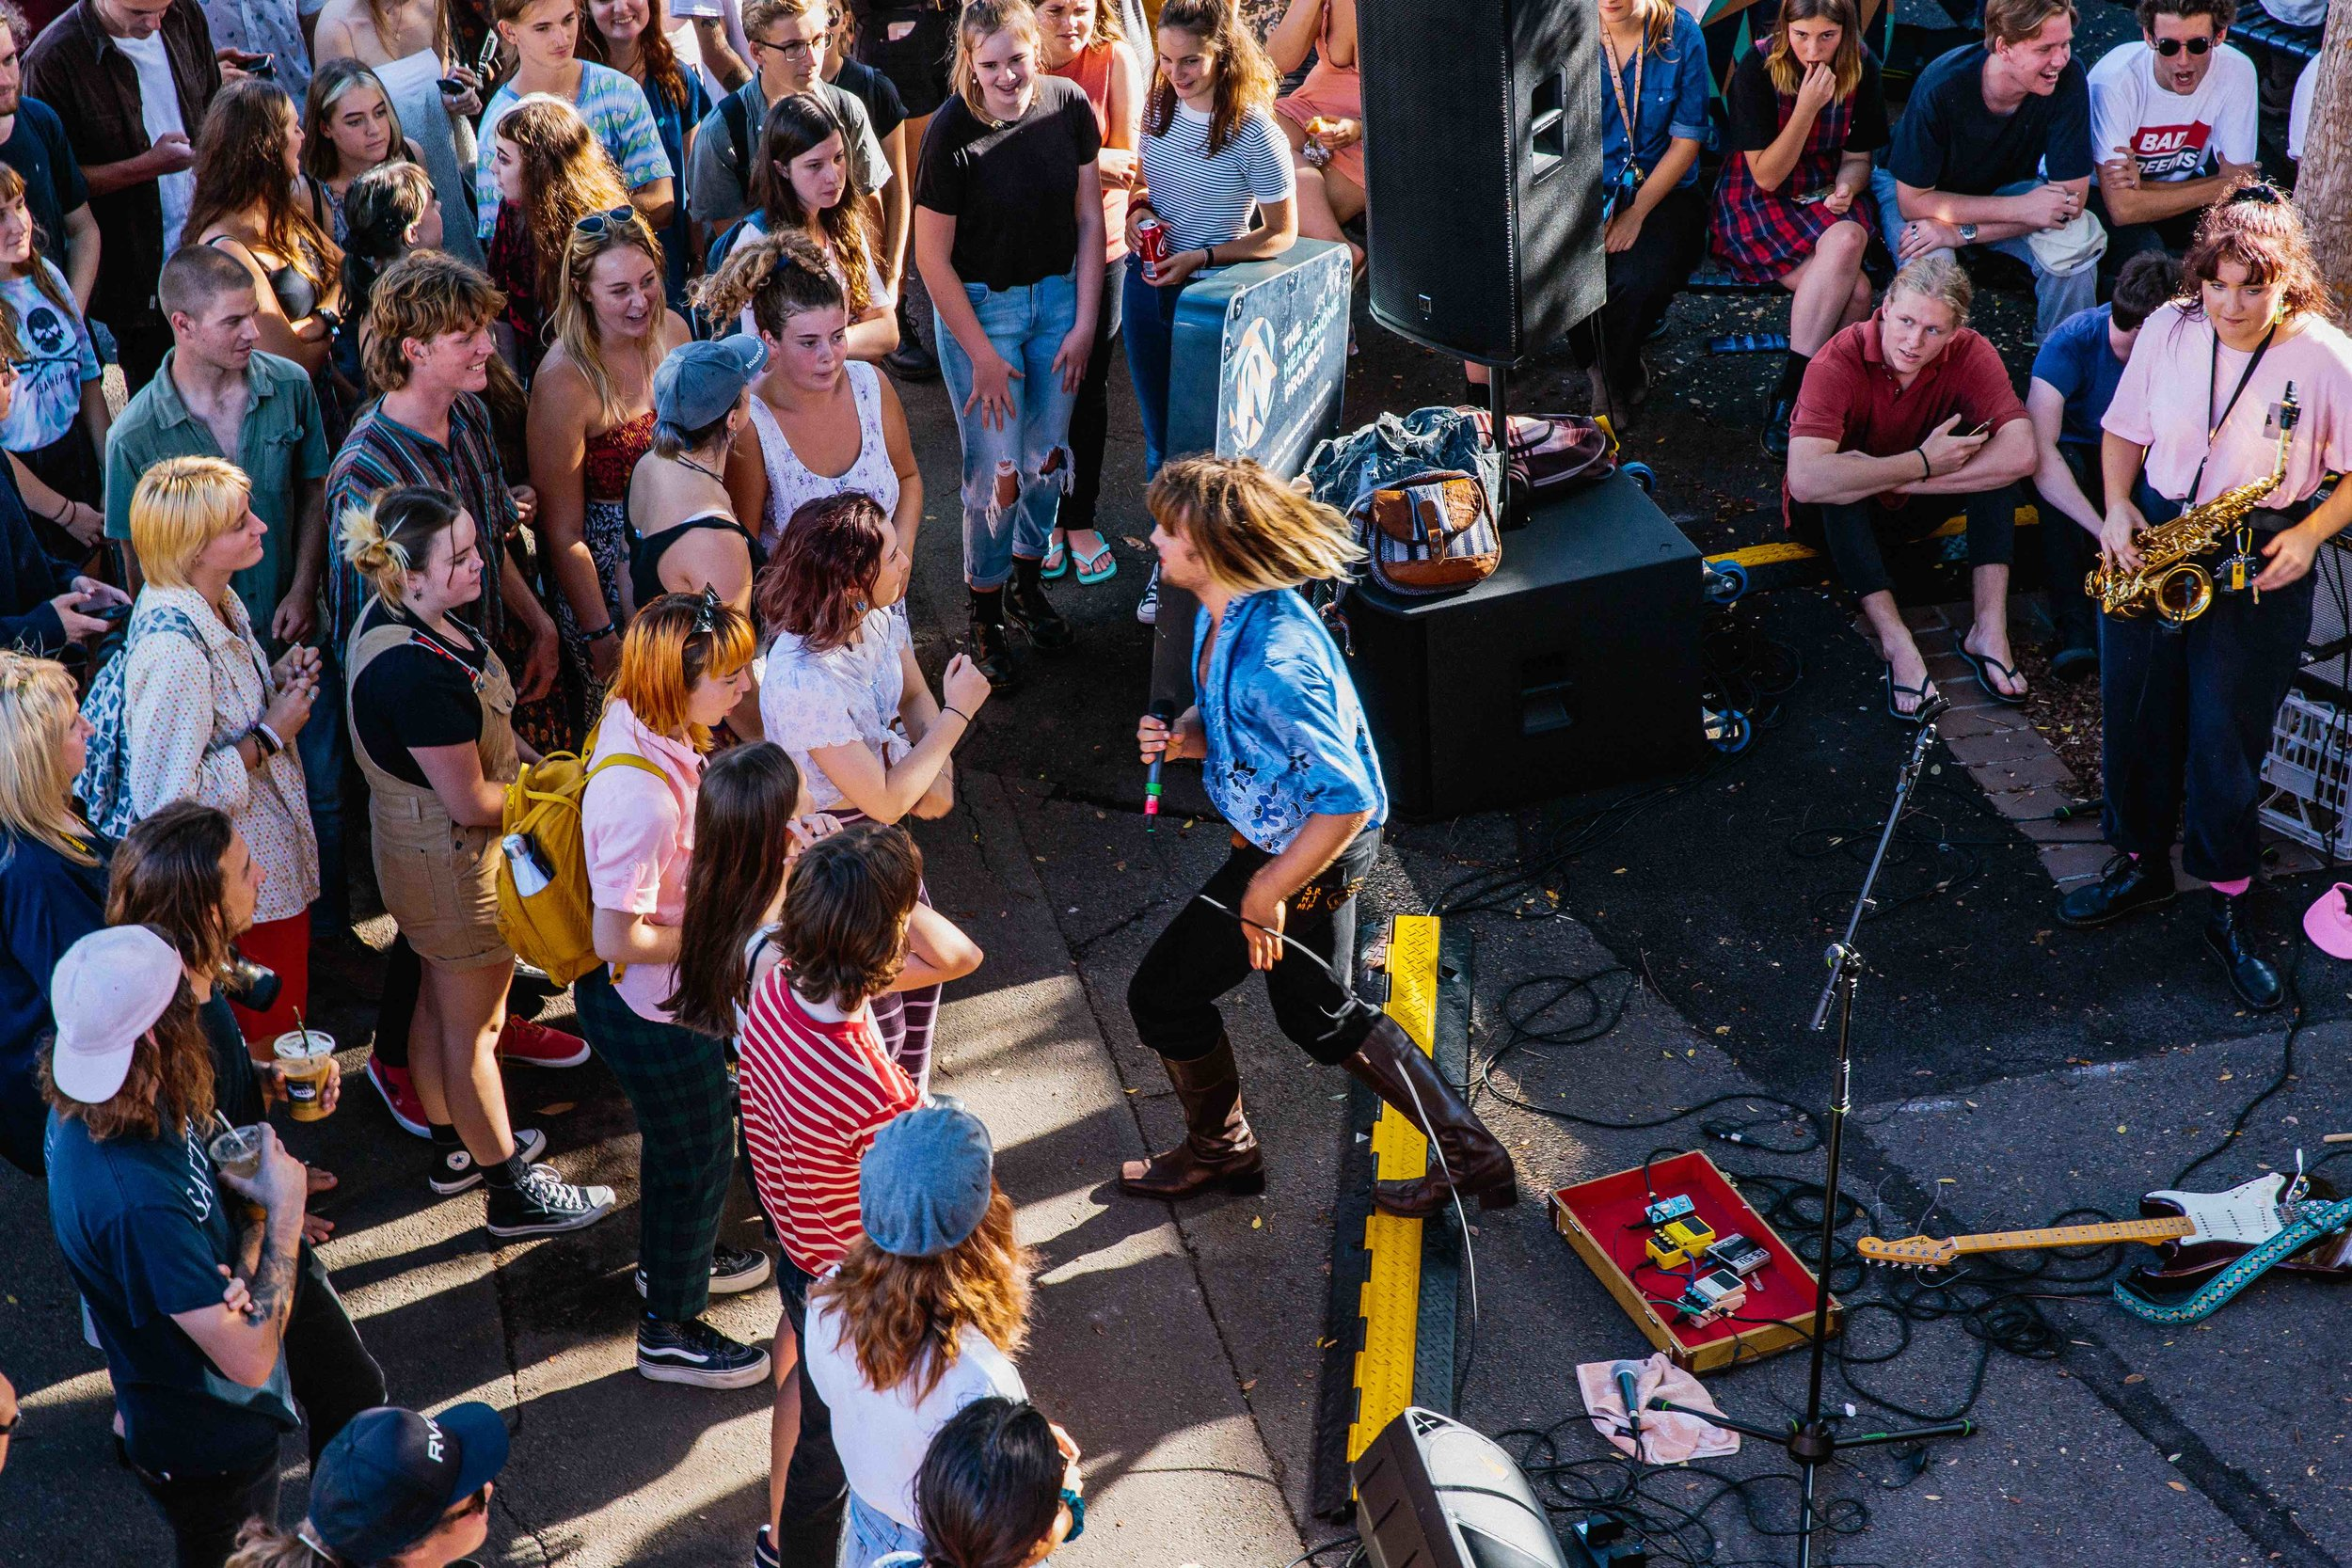 Photo courtesy of Lachlan Jordan Photography for Darby Street Live